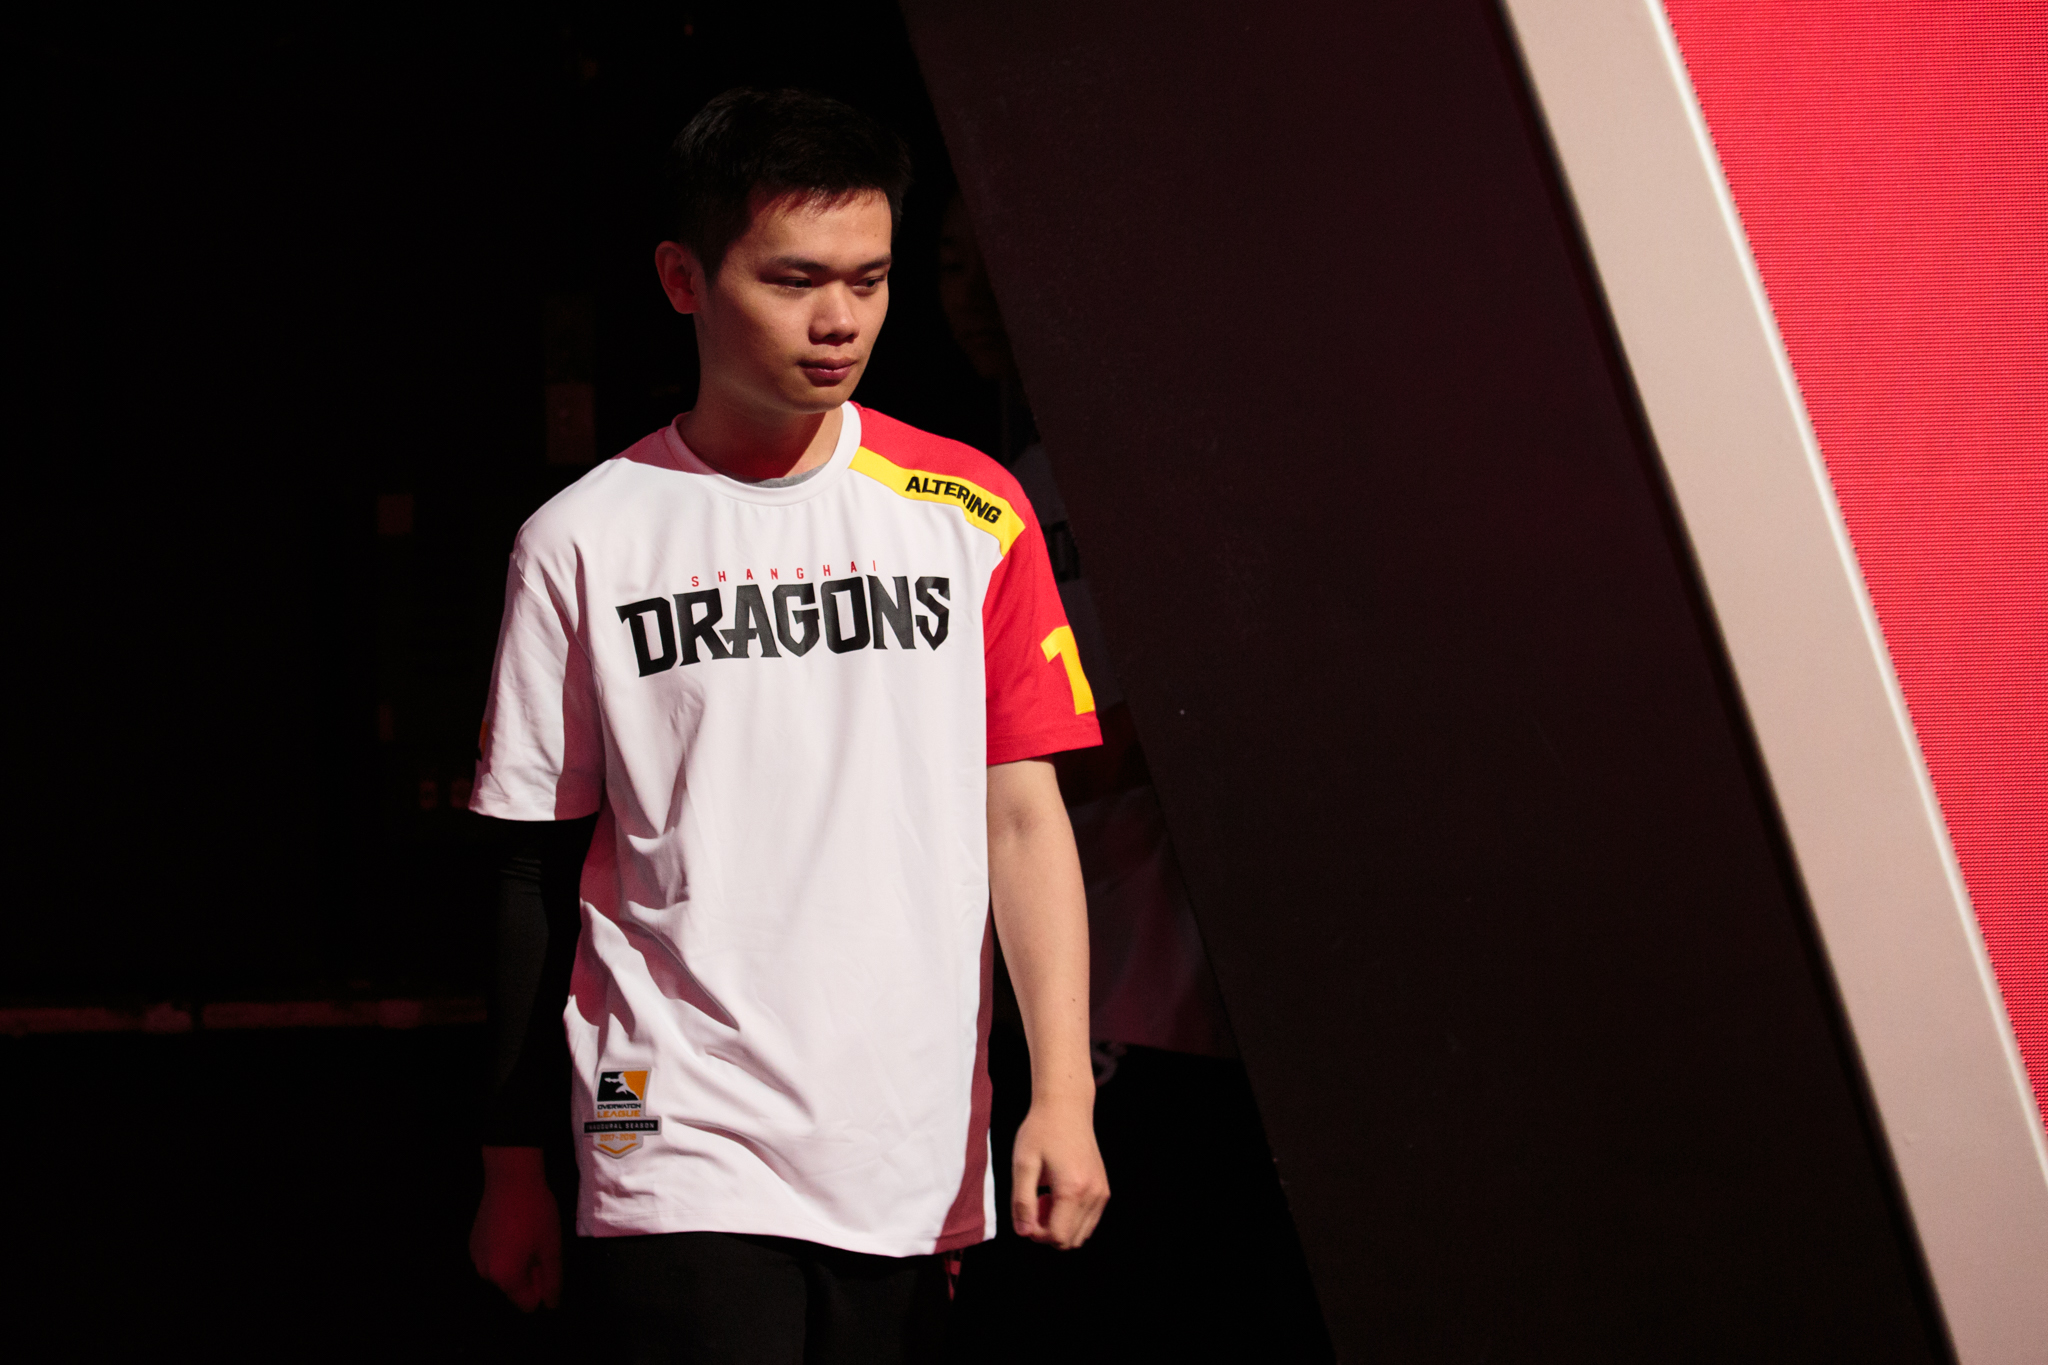 Shanghai Dragons Cuts The Majority Of Its Overwatch League Team Dot Esports